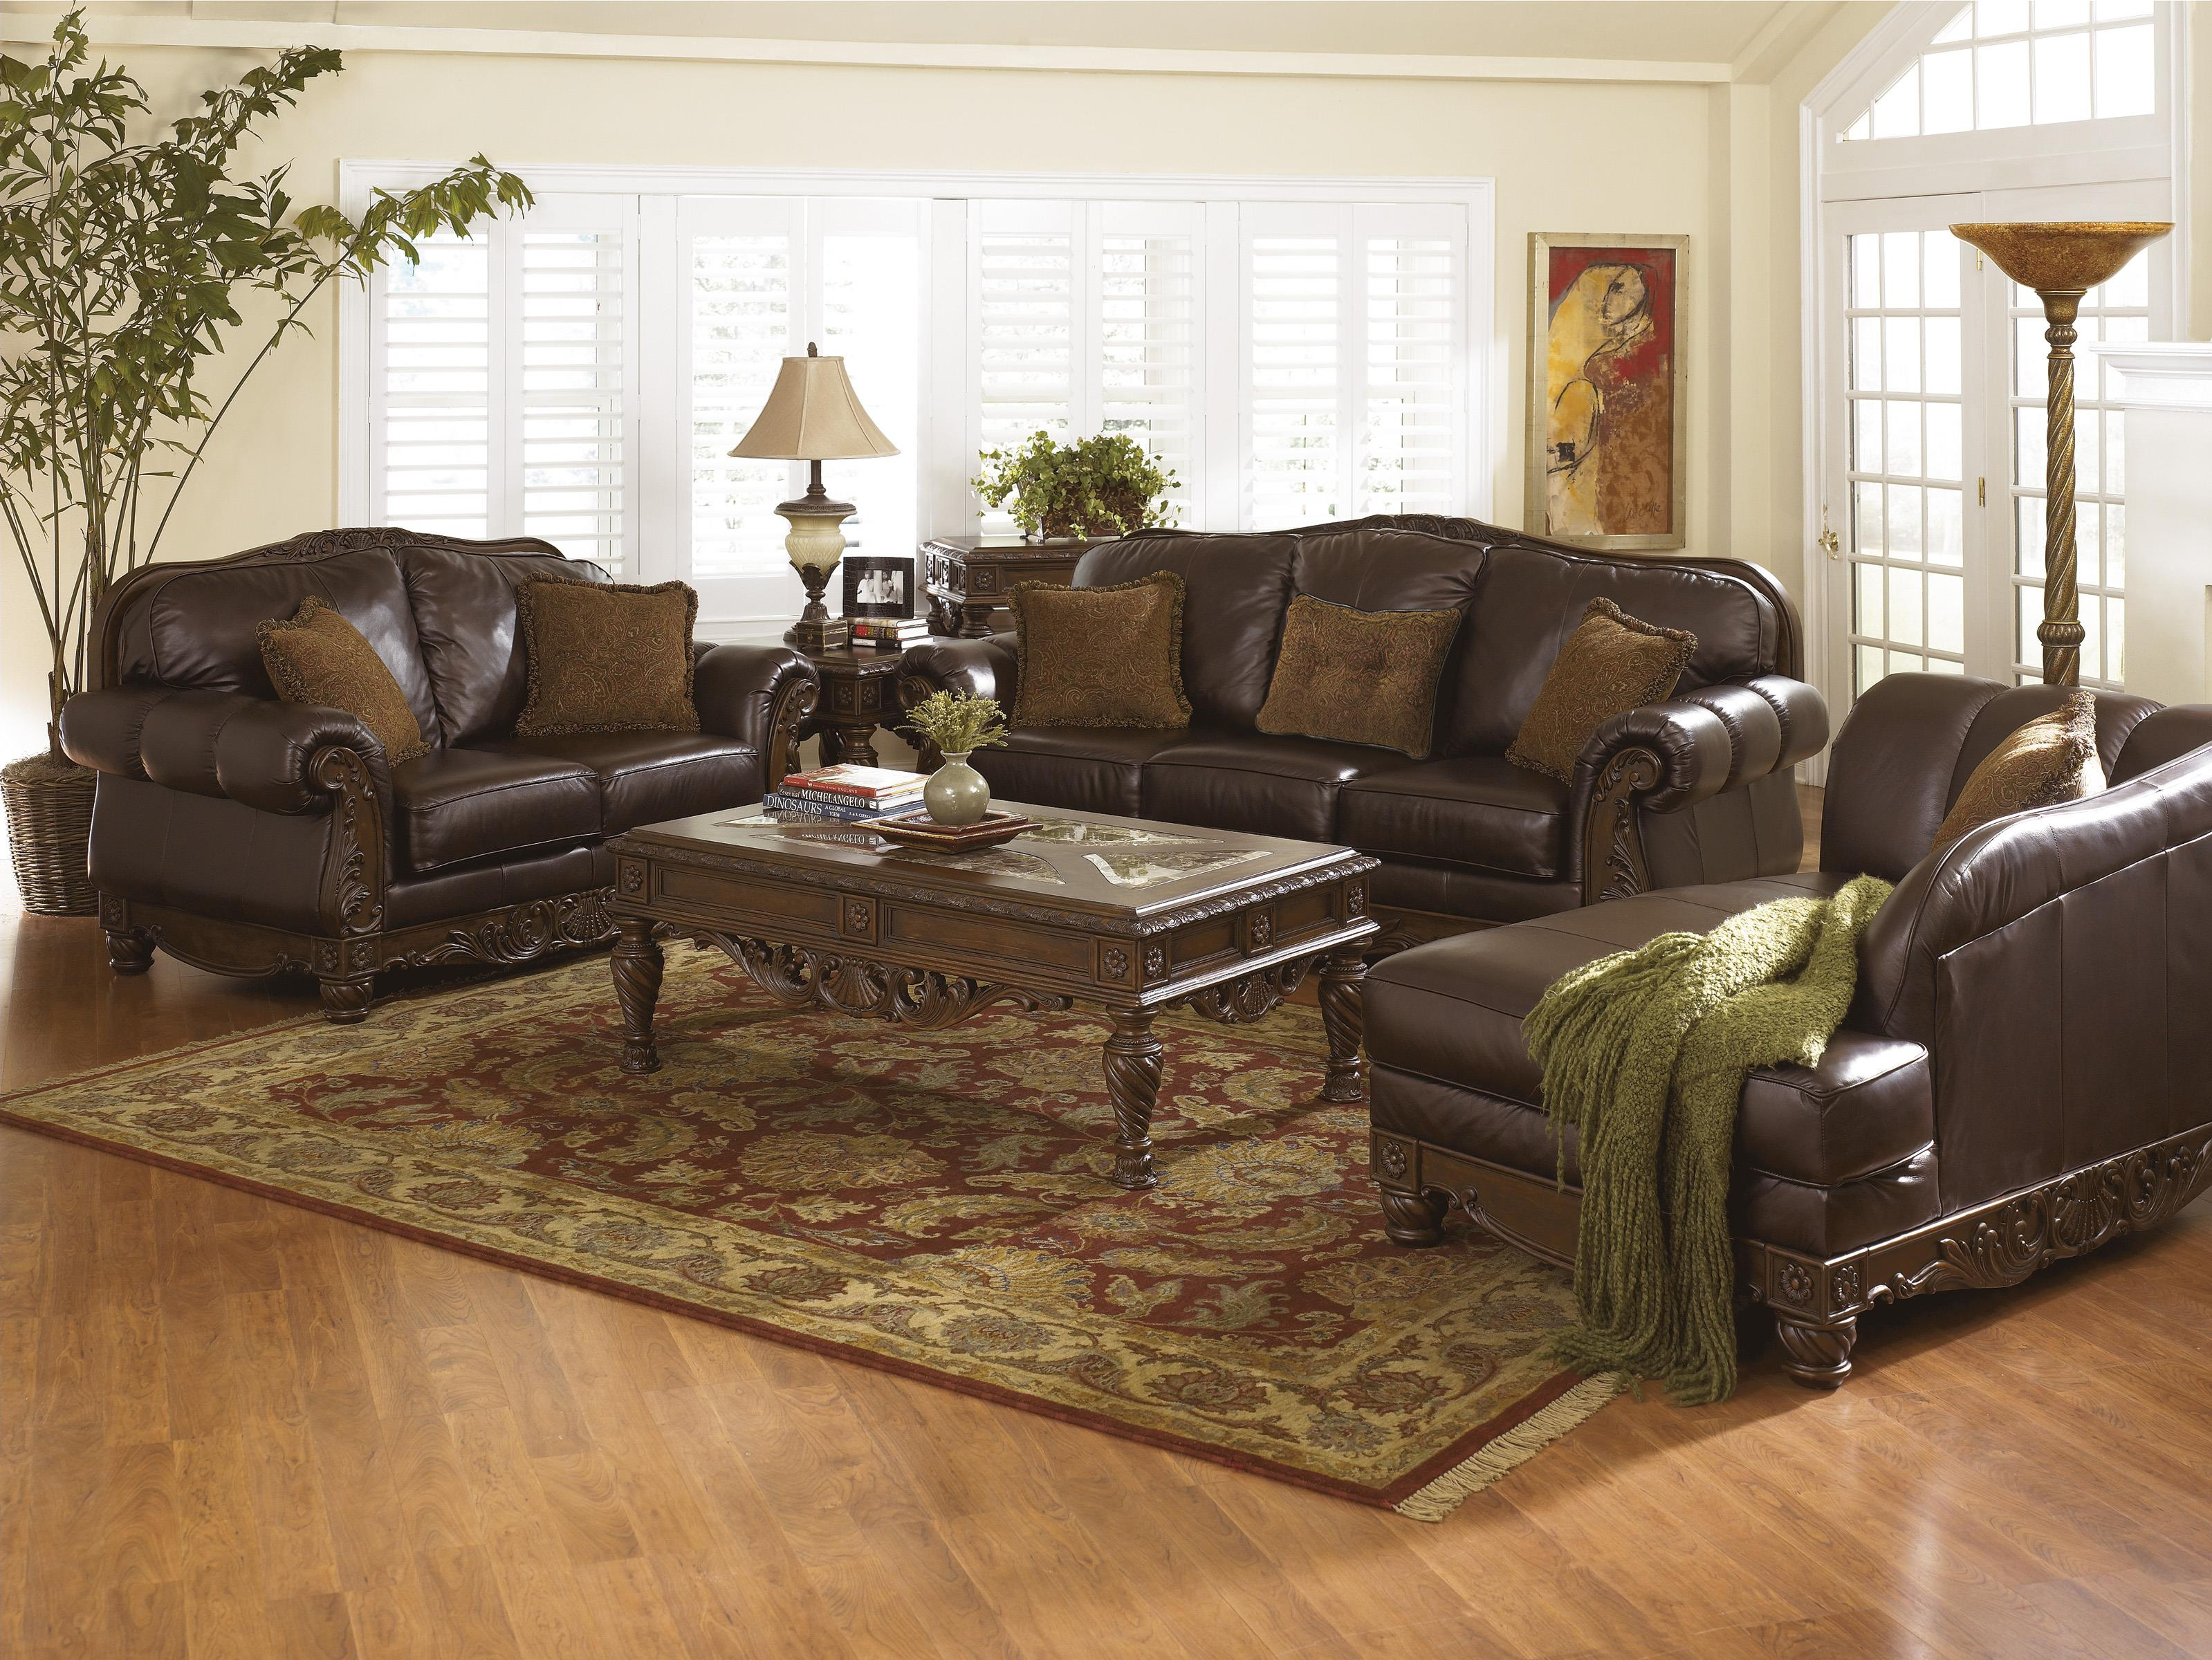 Millennium North Shore - Dark Brown Stationary Living Room Group - Item Number: 22603 Living Room Group 2